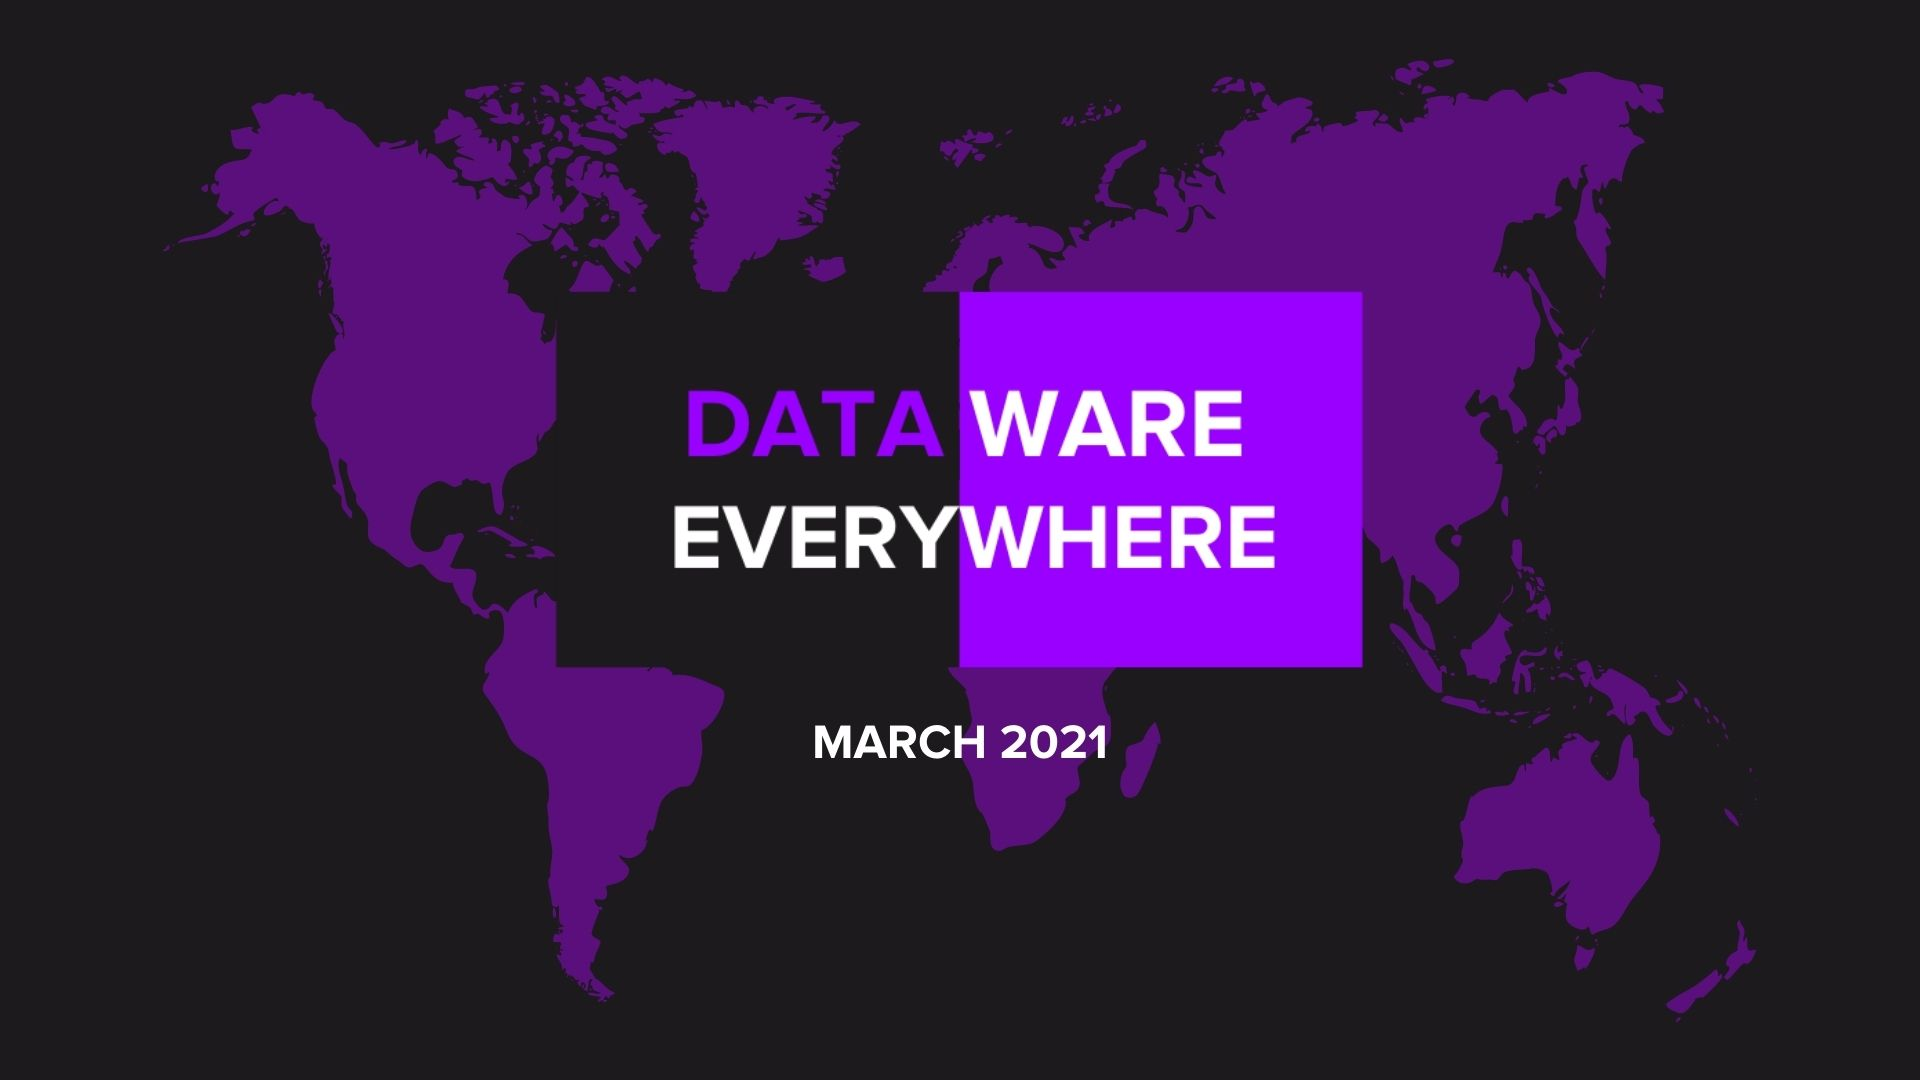 [Read] Dataware, Everywhere March 2021 Edition